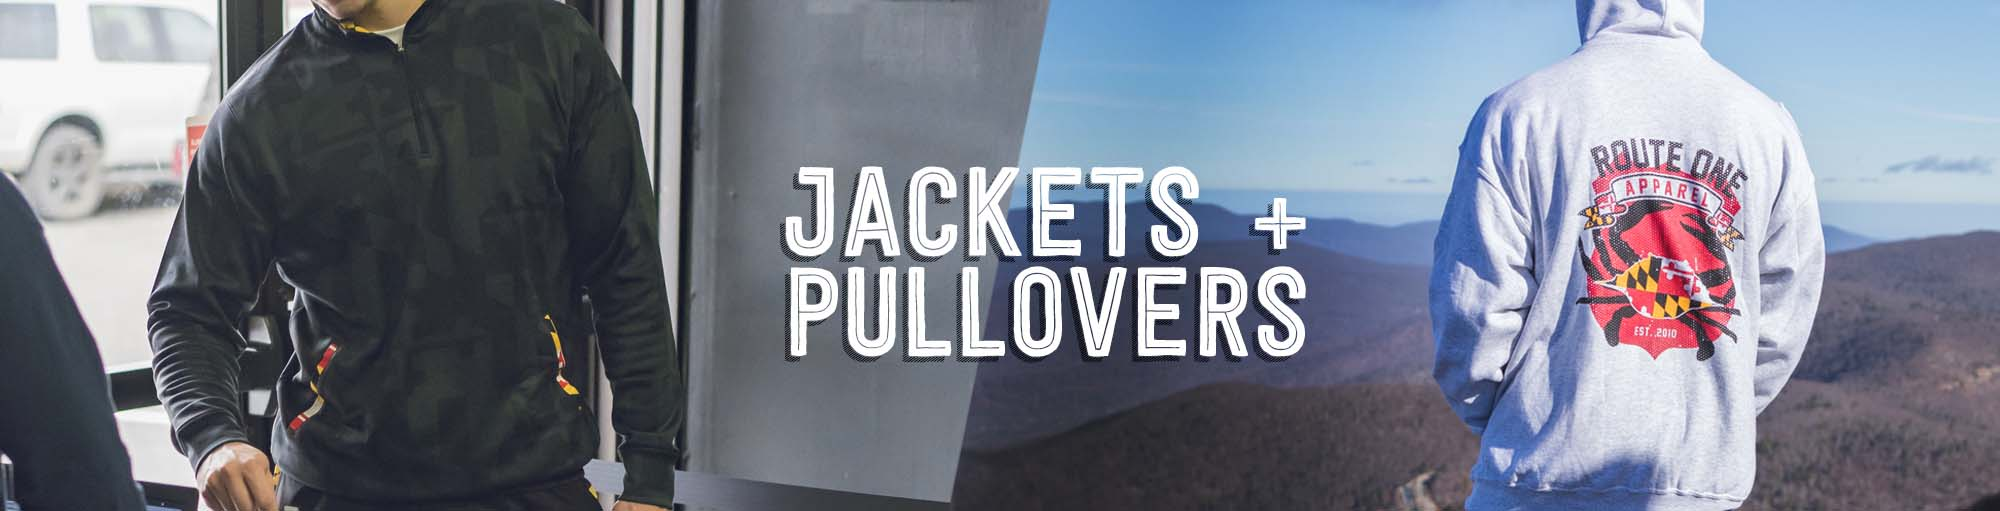 e0250008b45 Jackets + Pullovers – Route One Apparel